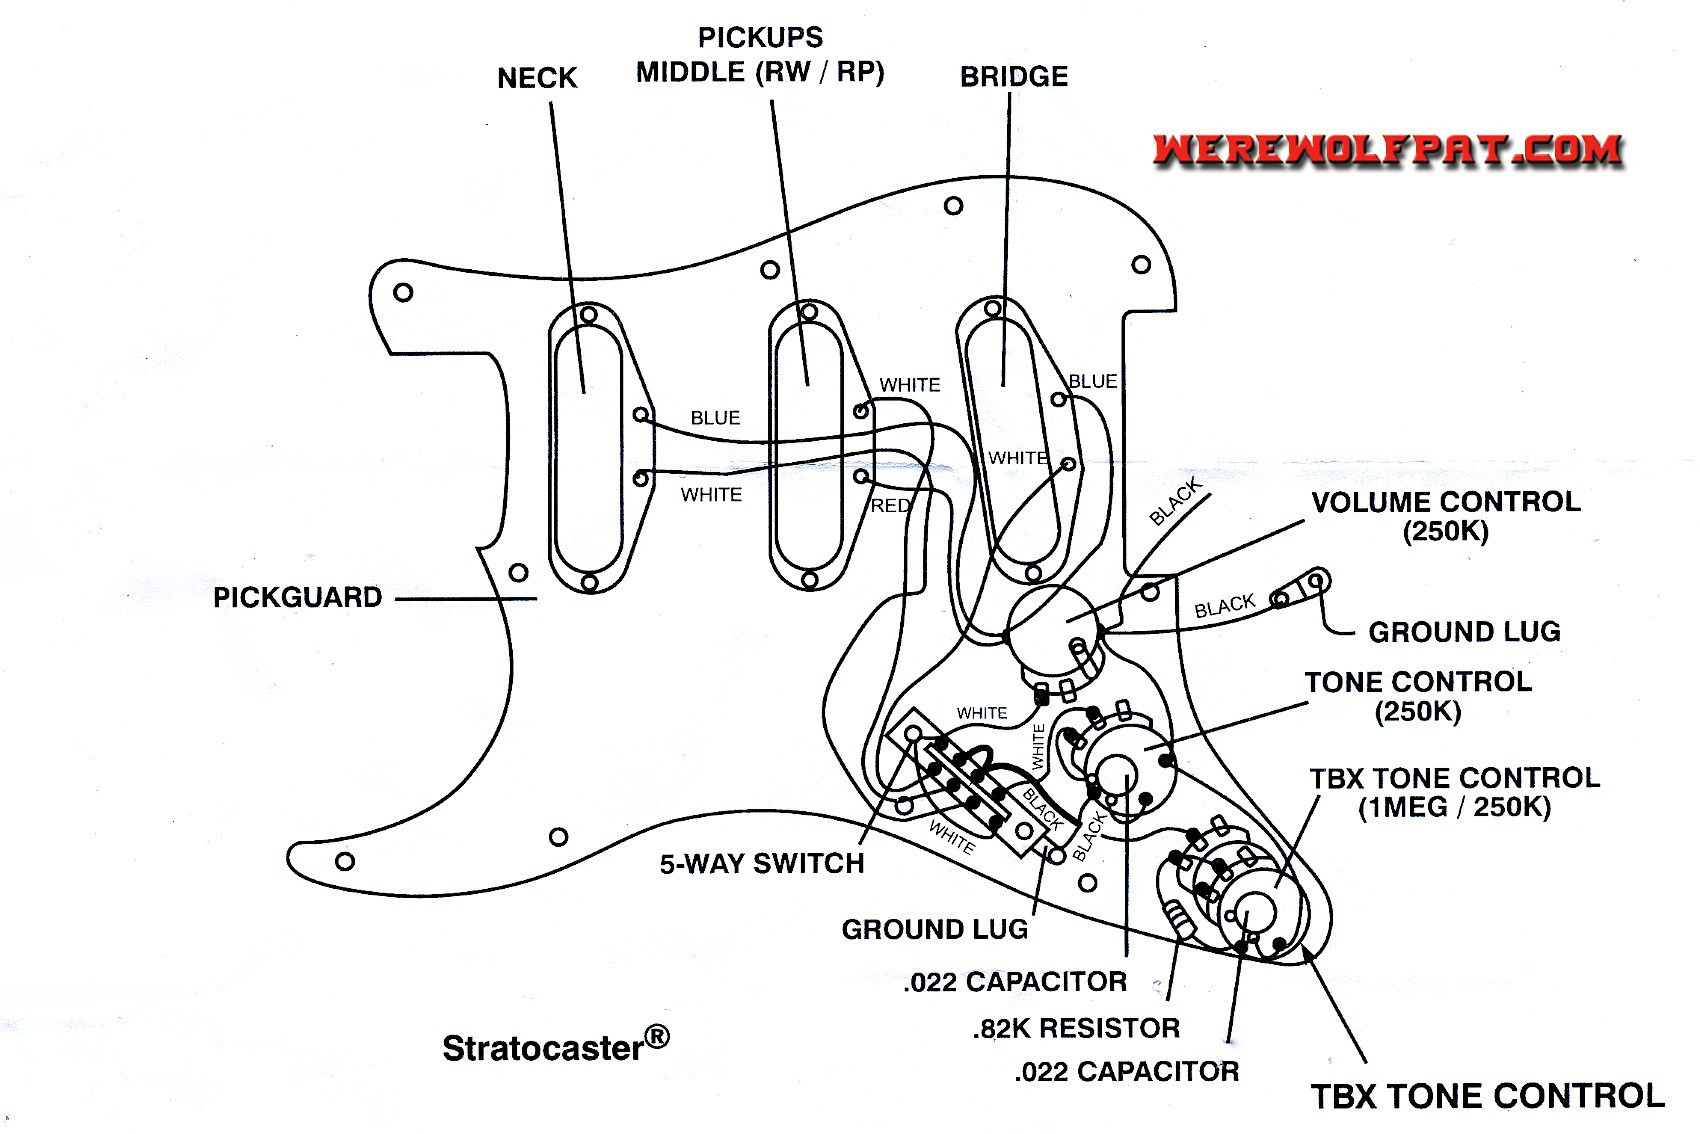 mosrite guitar wiring diagram mosrite pickup wiring diagram get fender vintage noiseless pickups wiring diagram sample